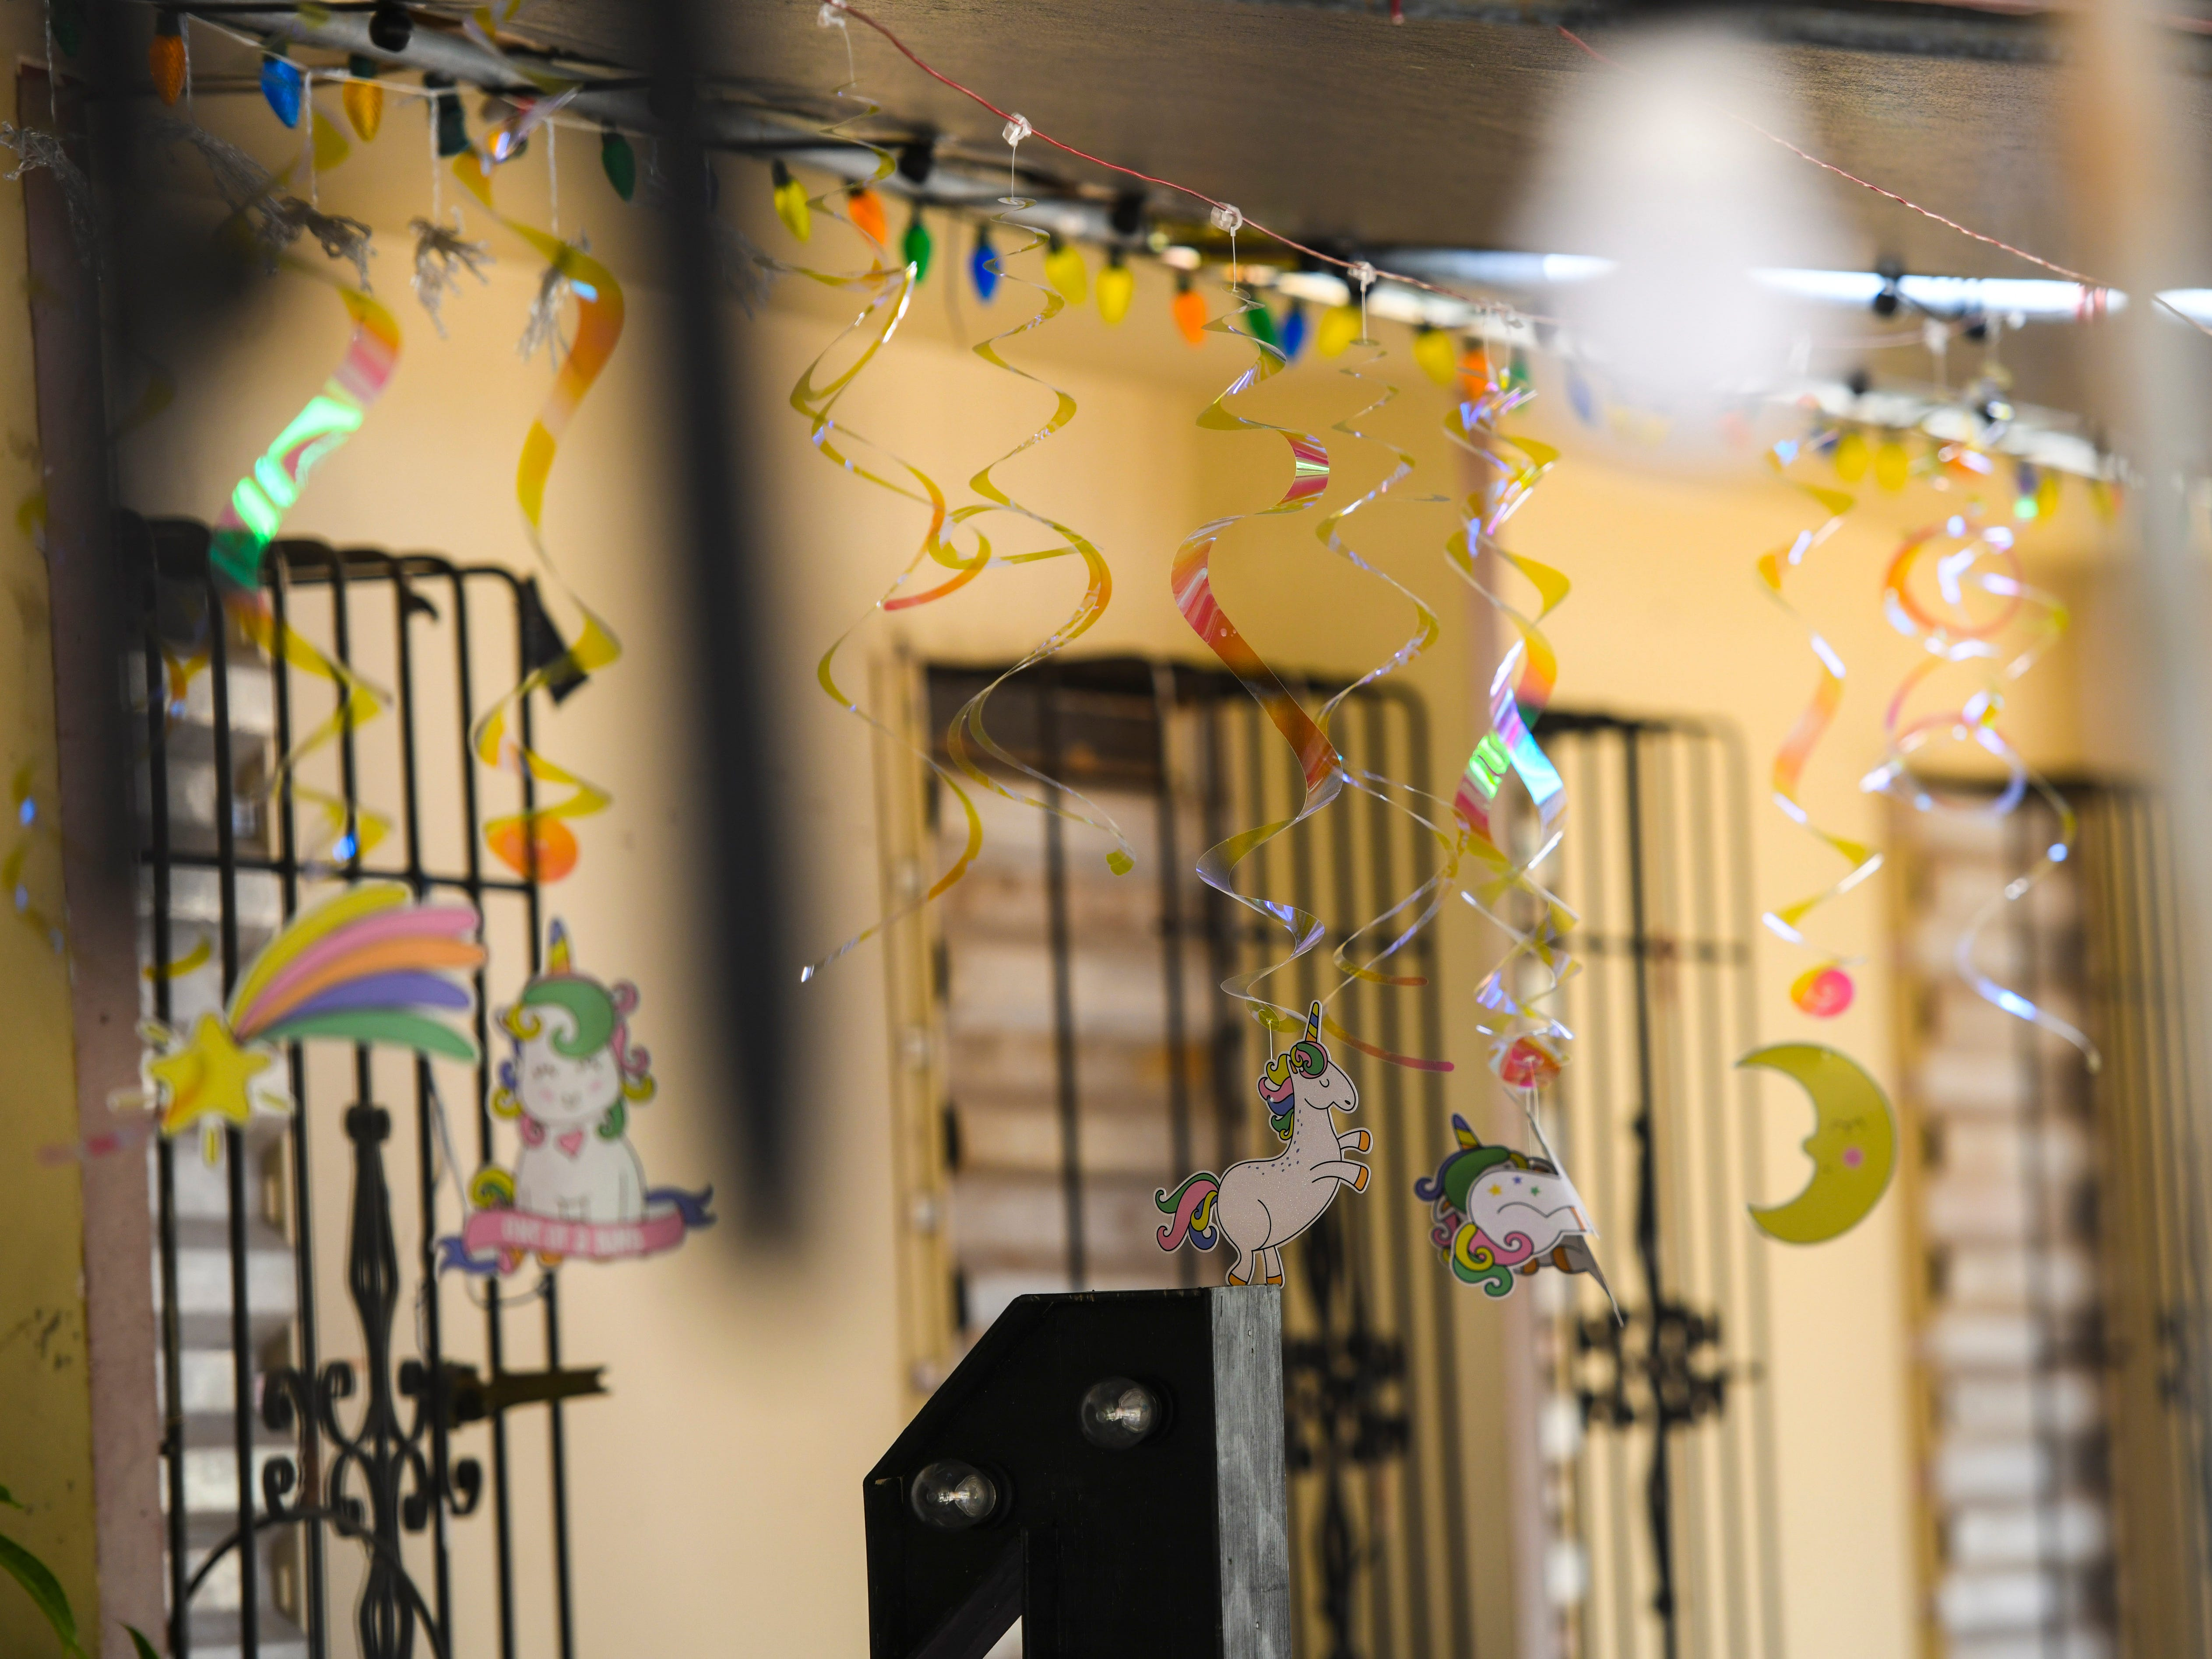 Decorations hang under the canopy of the David residence in preparation of celebrating a birthday on May 8, 2019. The occasion was tarnished, when tradegy struck the night before, when four-year-old Jericho Zion David died in his father's arms after being struck by a motorist driving in front of the family's residence.